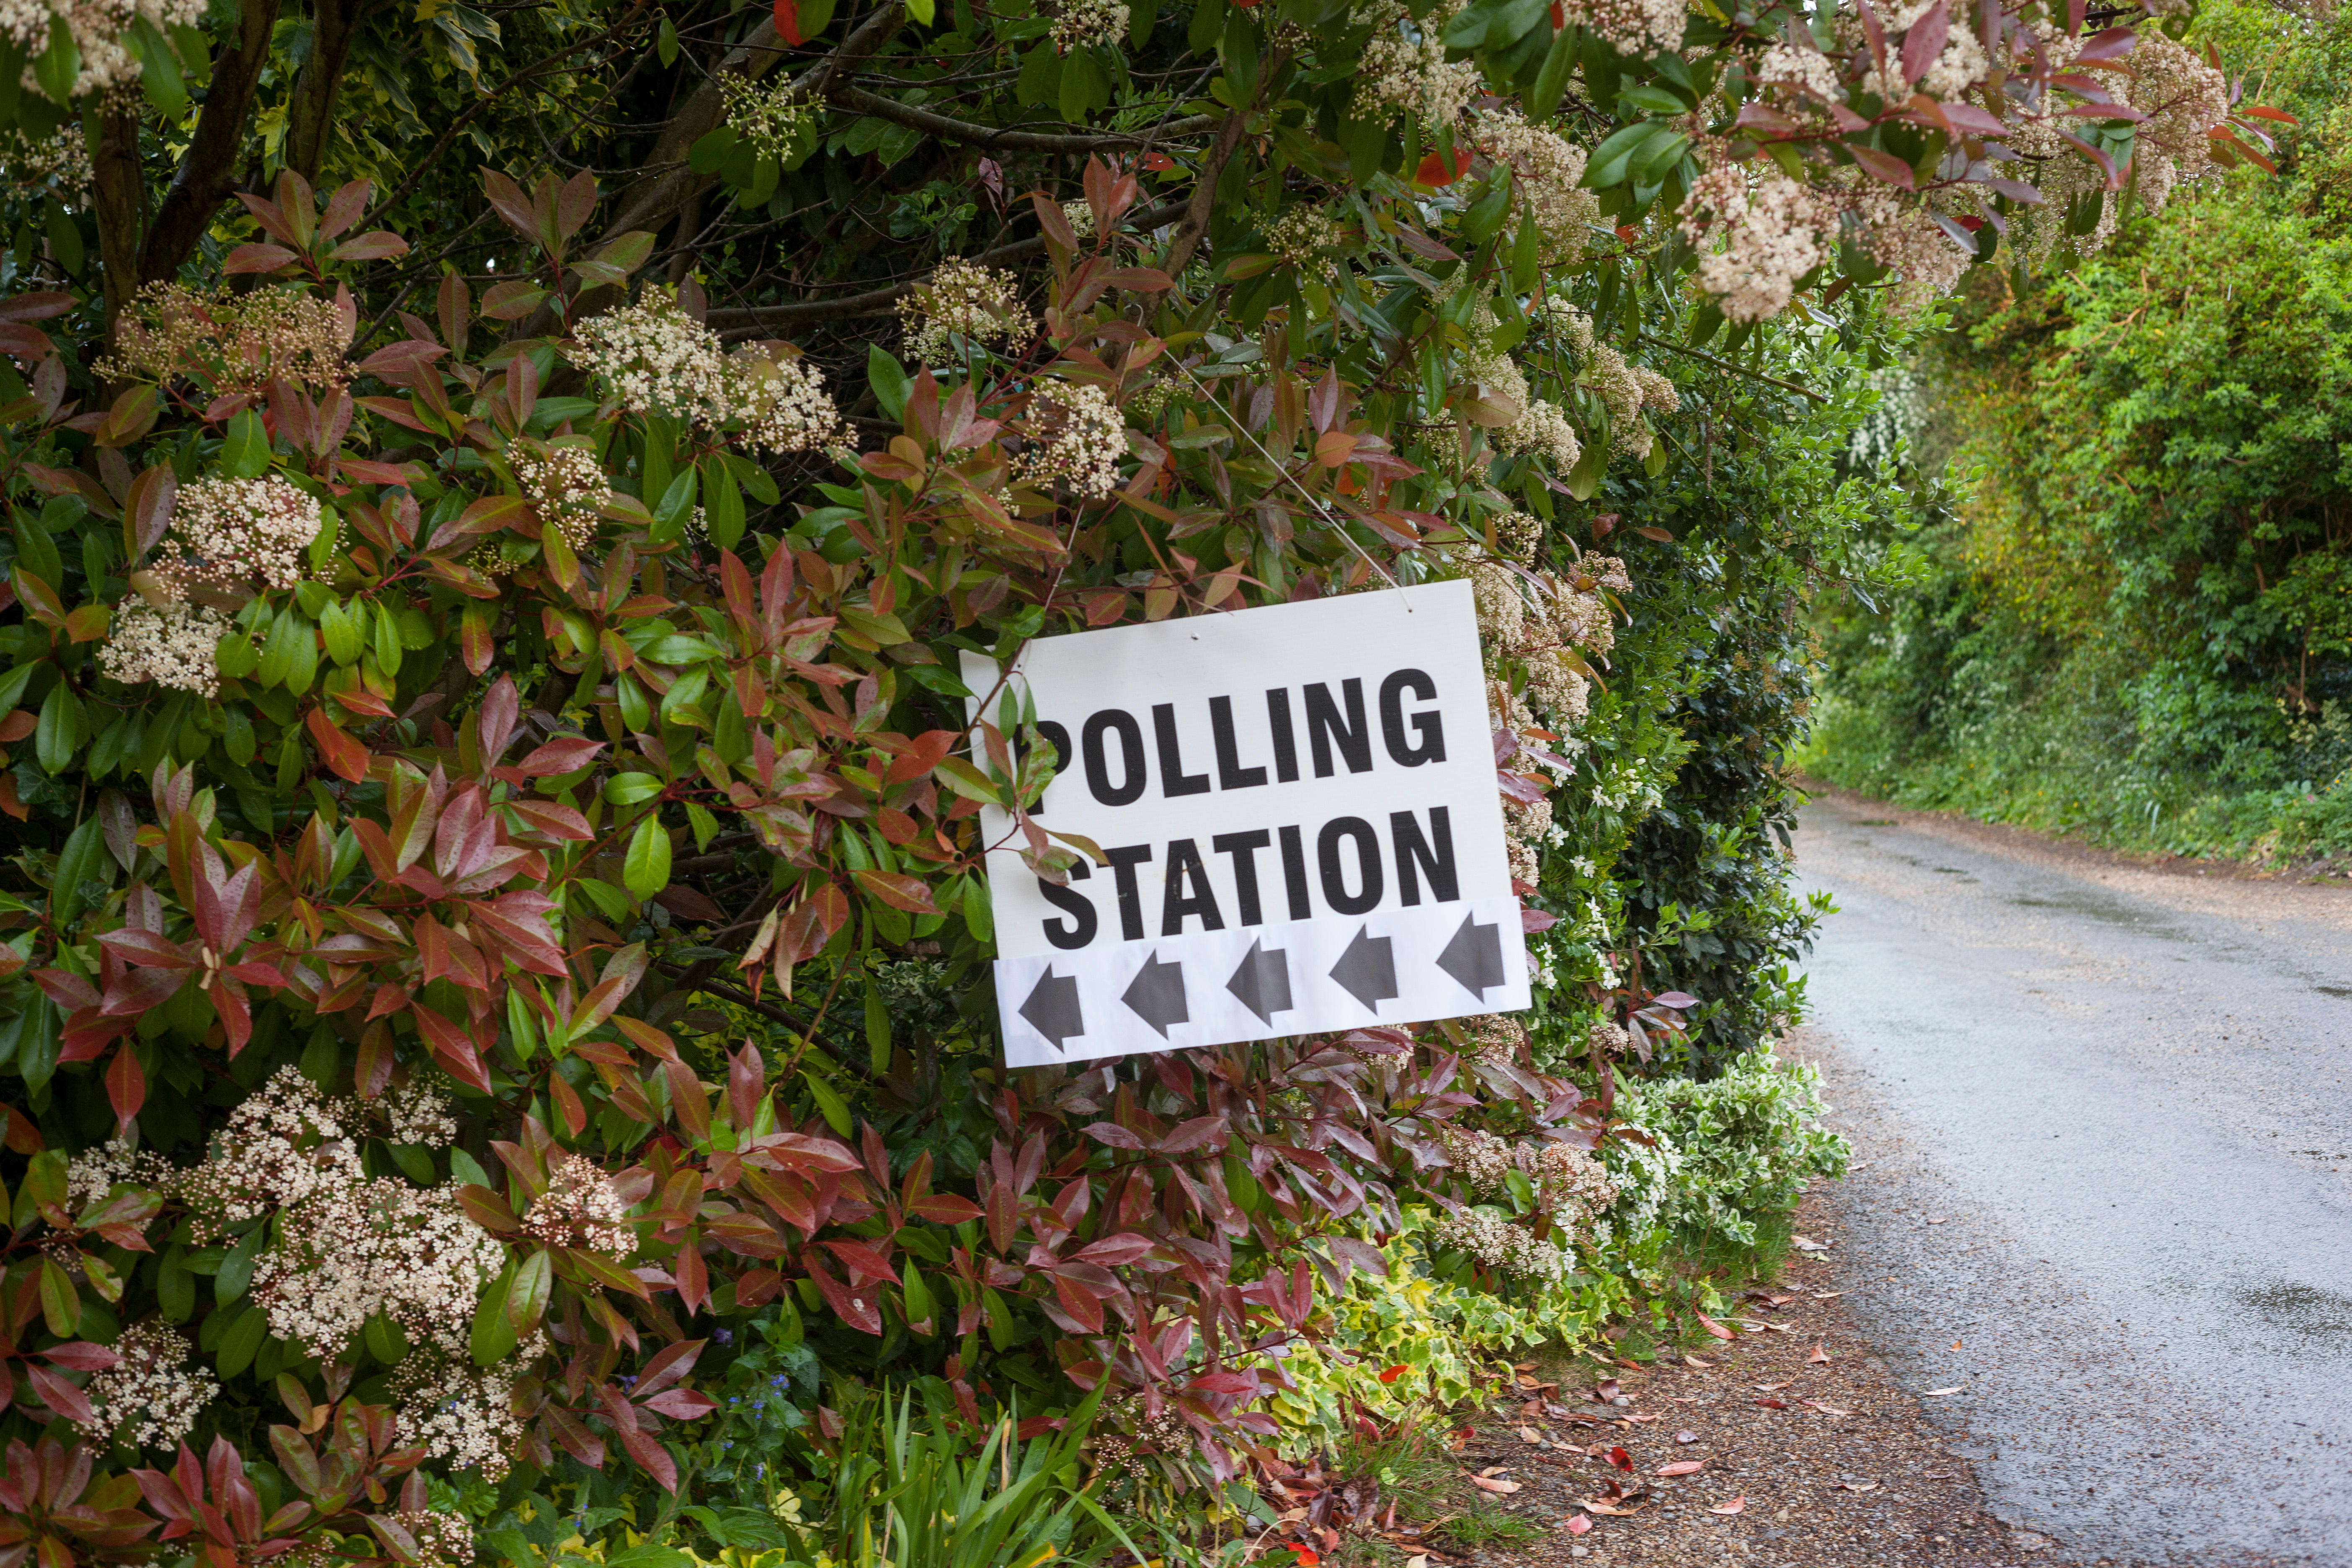 A countryside dweller's guide to the 2019 General Election: Who will do what, and where, and when?